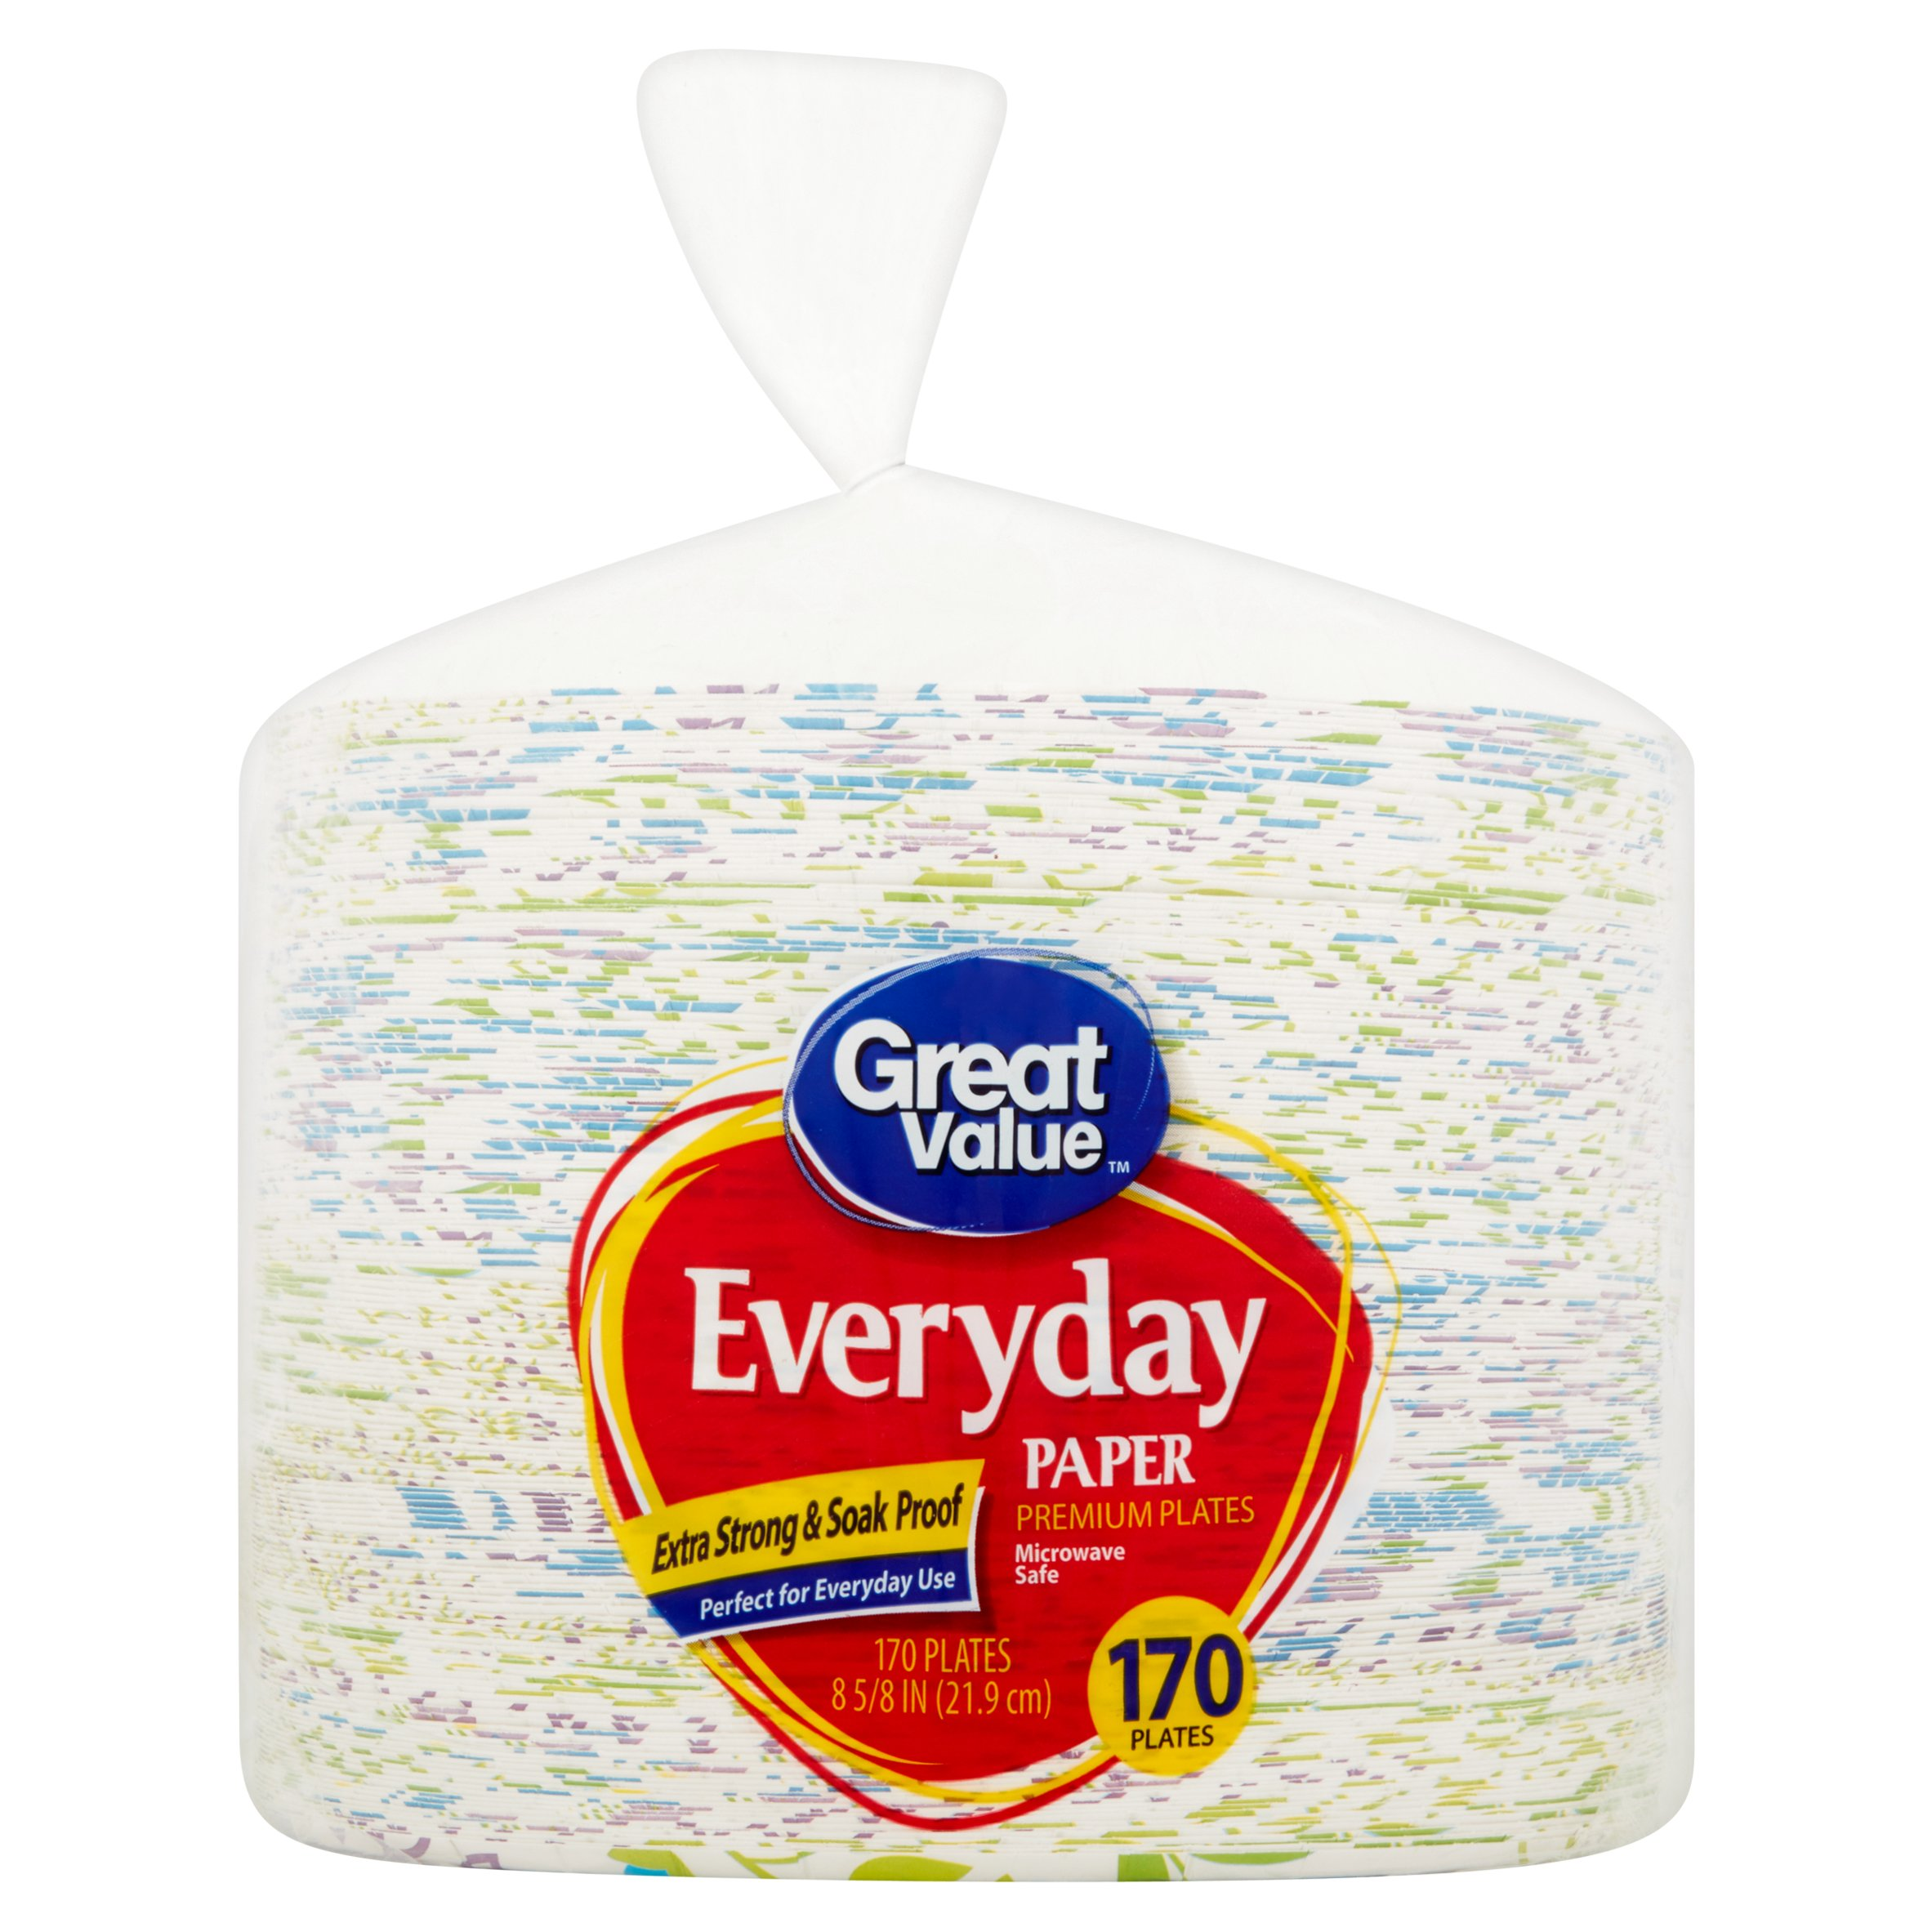 "Great Value Everyday Paper Premium Plates, 8 5/8"", 170 Count"